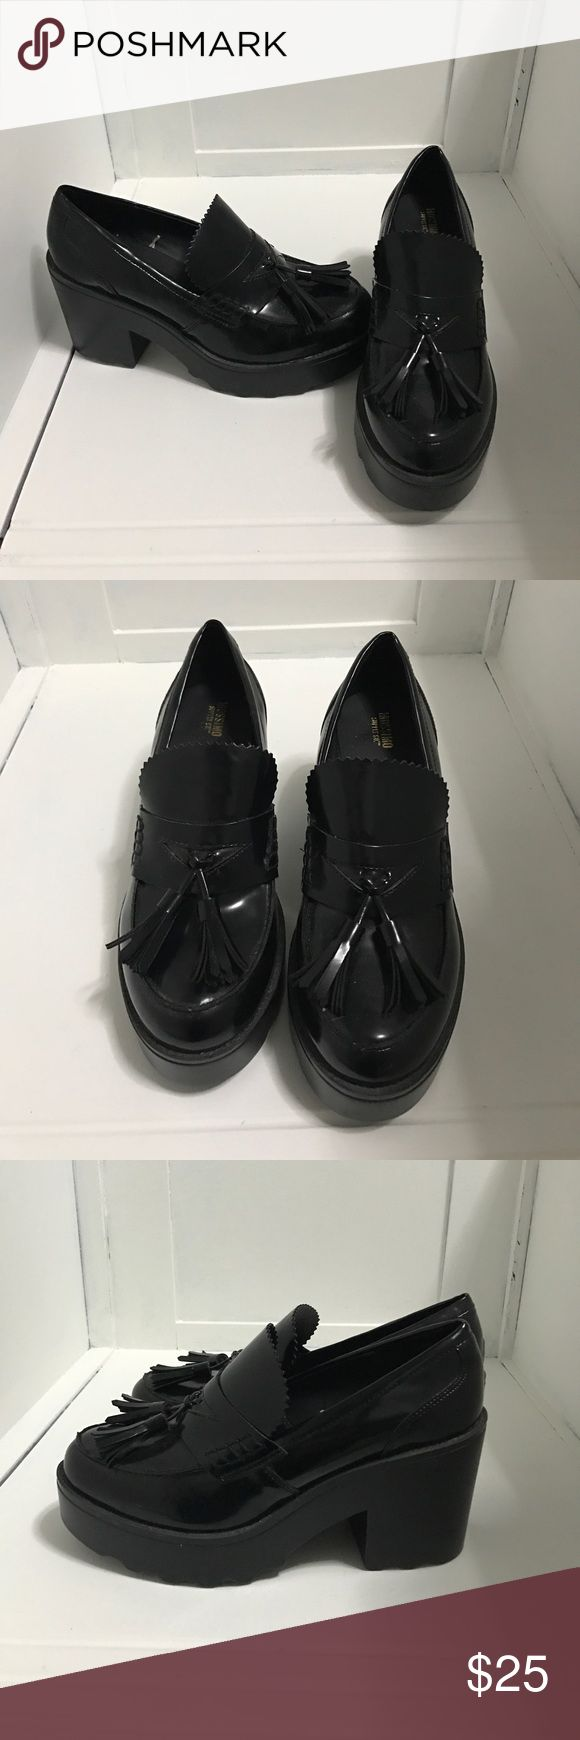 Black Chunky Loafer Heels Black heels super super cute, never worn, can fit 8.5-10. Tried them on and fit a bit big and i'm a size 8 but a friend tried them on and they fit her and she's a 8.5/9. Hopefully can get worn in by someone who can rock them (: OFFERS WELCOME 😊 Mossimo Supply Co Shoes Heels